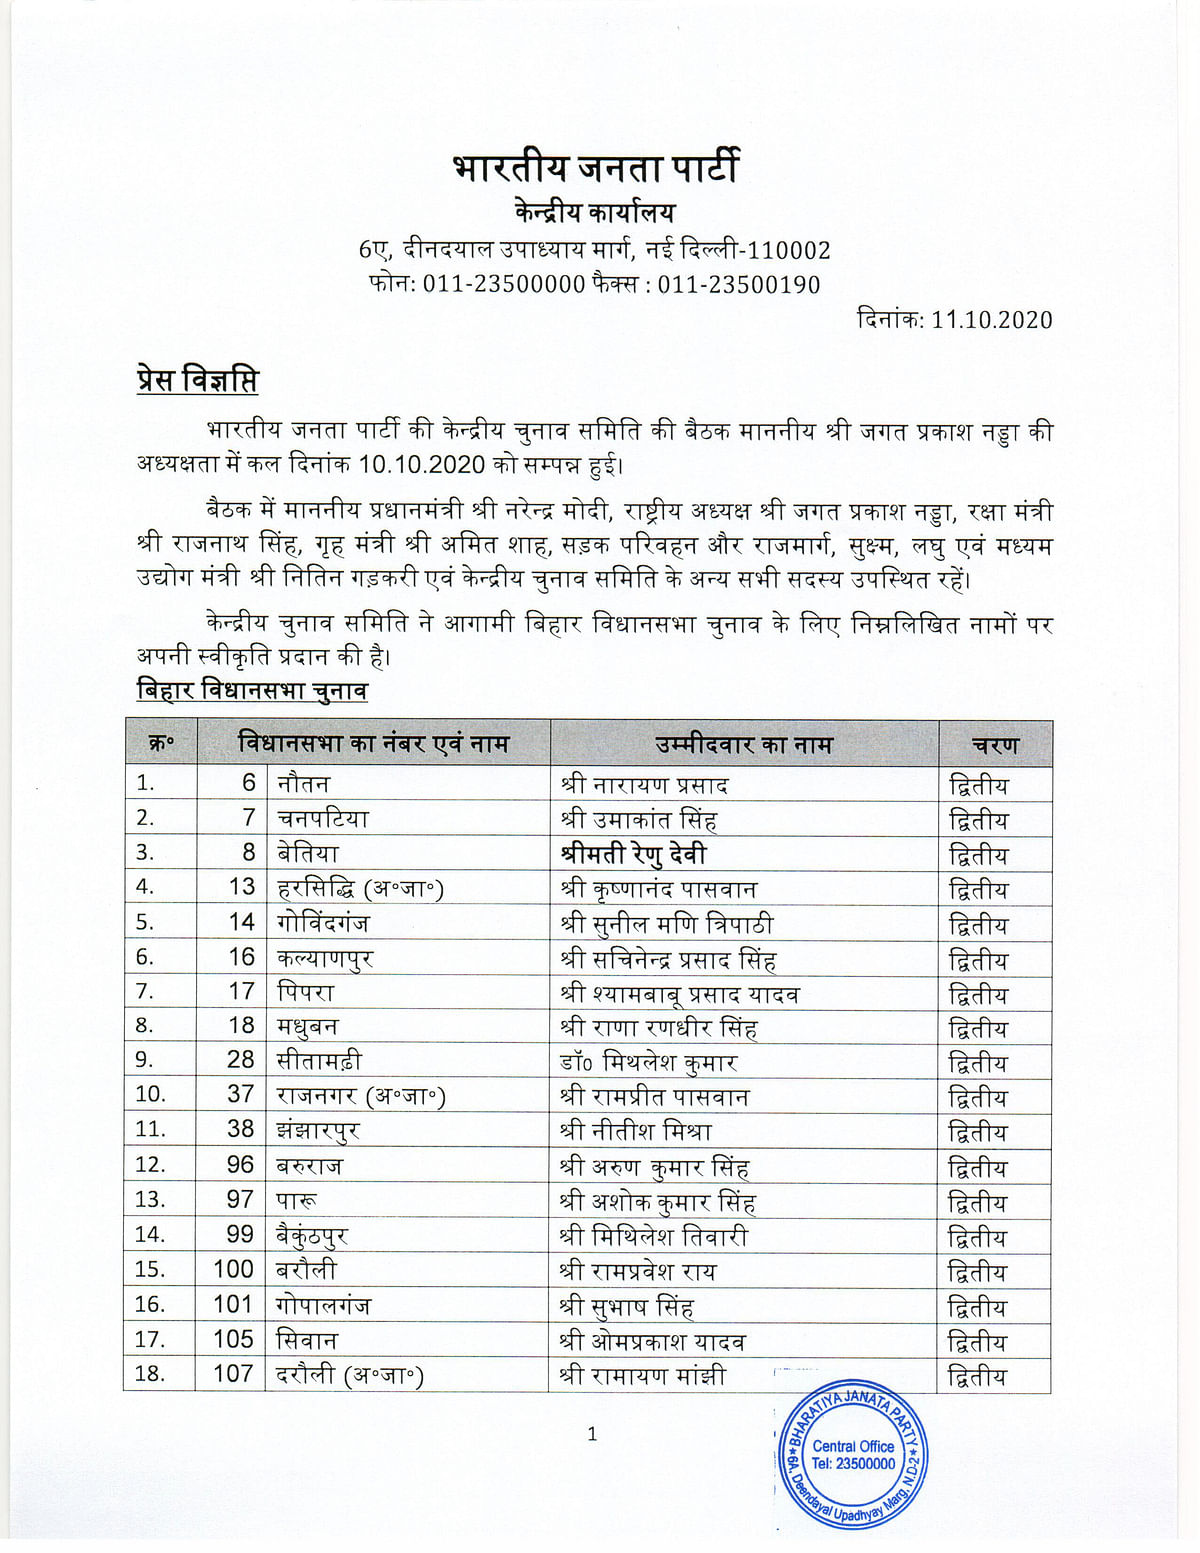 Bihar Elections 2020: Here is BJP's full list of 46 candidates for the second phase of polls